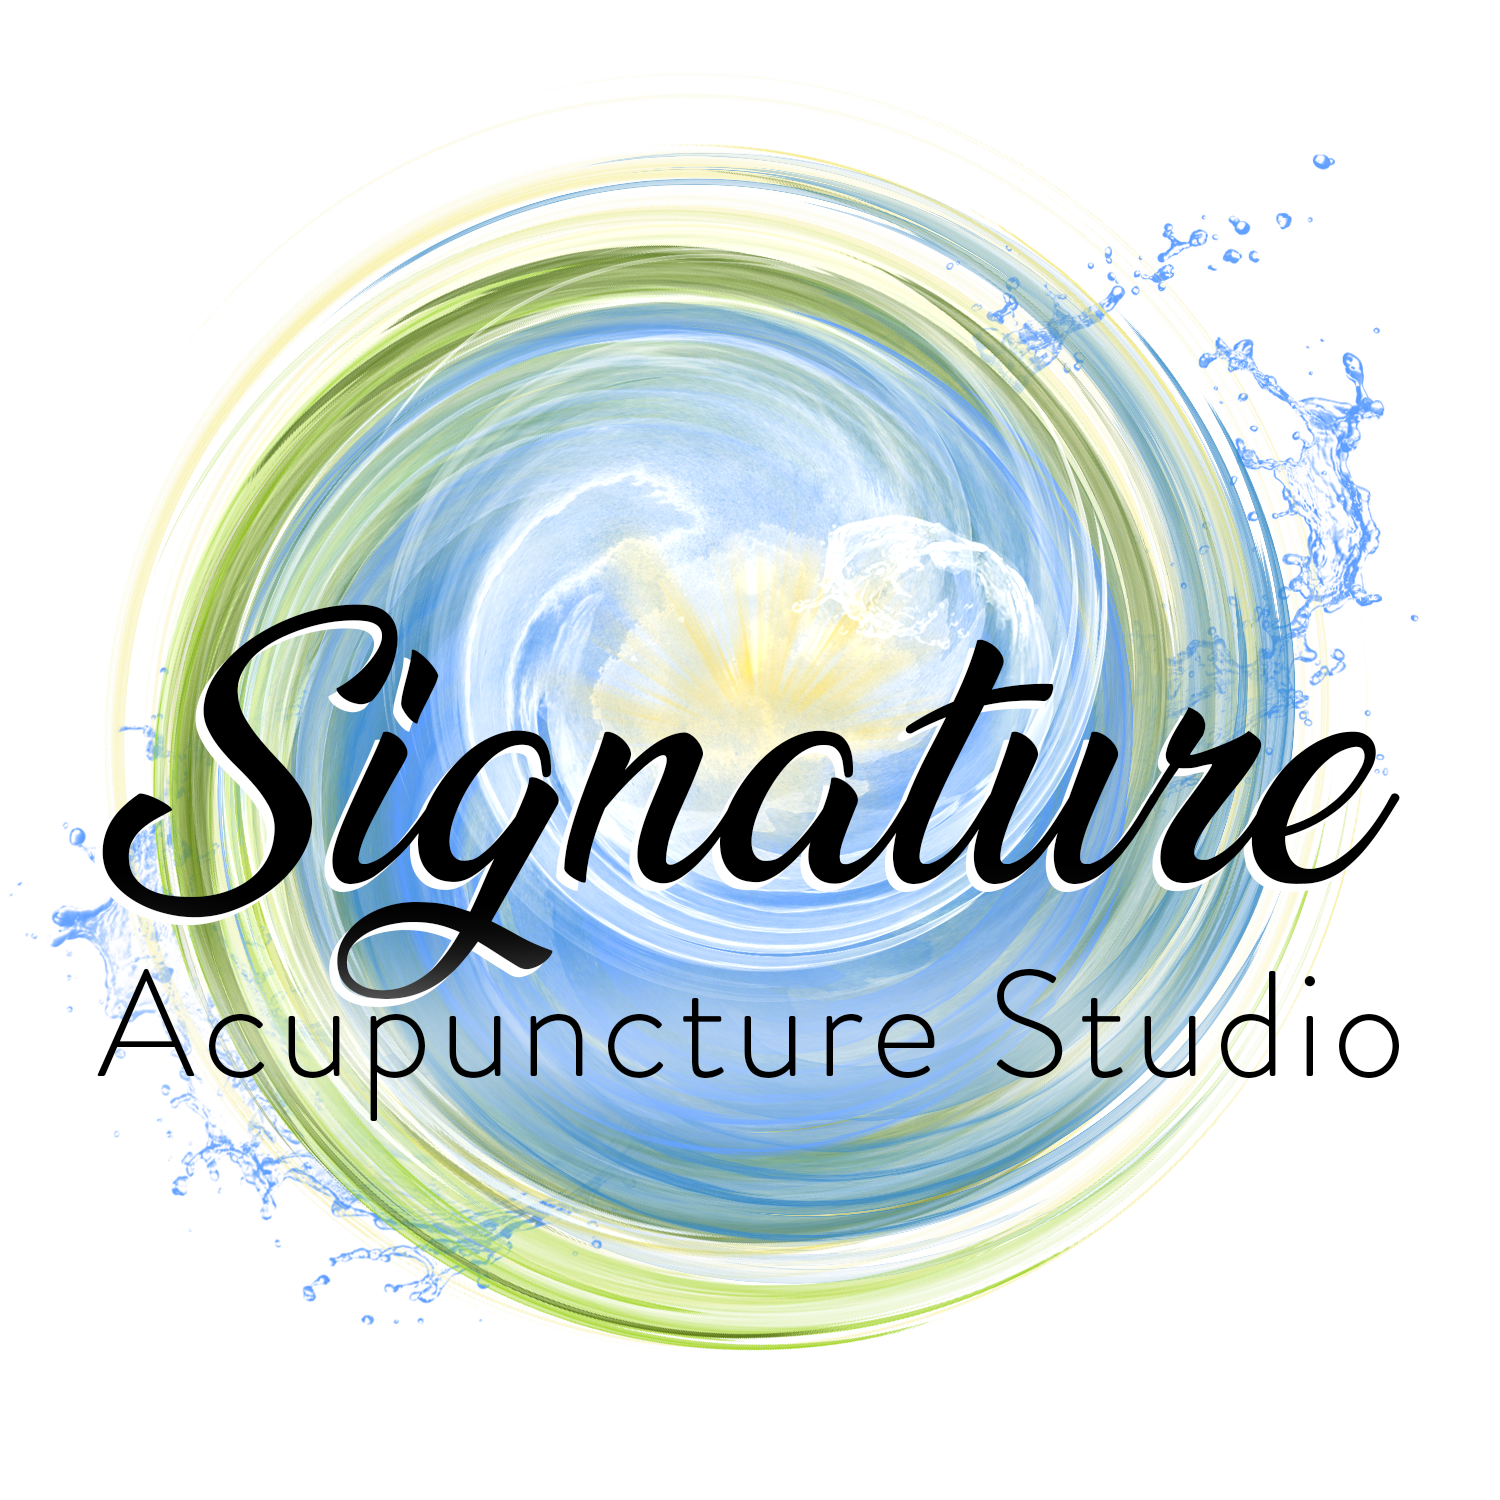 Signature Acupuncture Studio